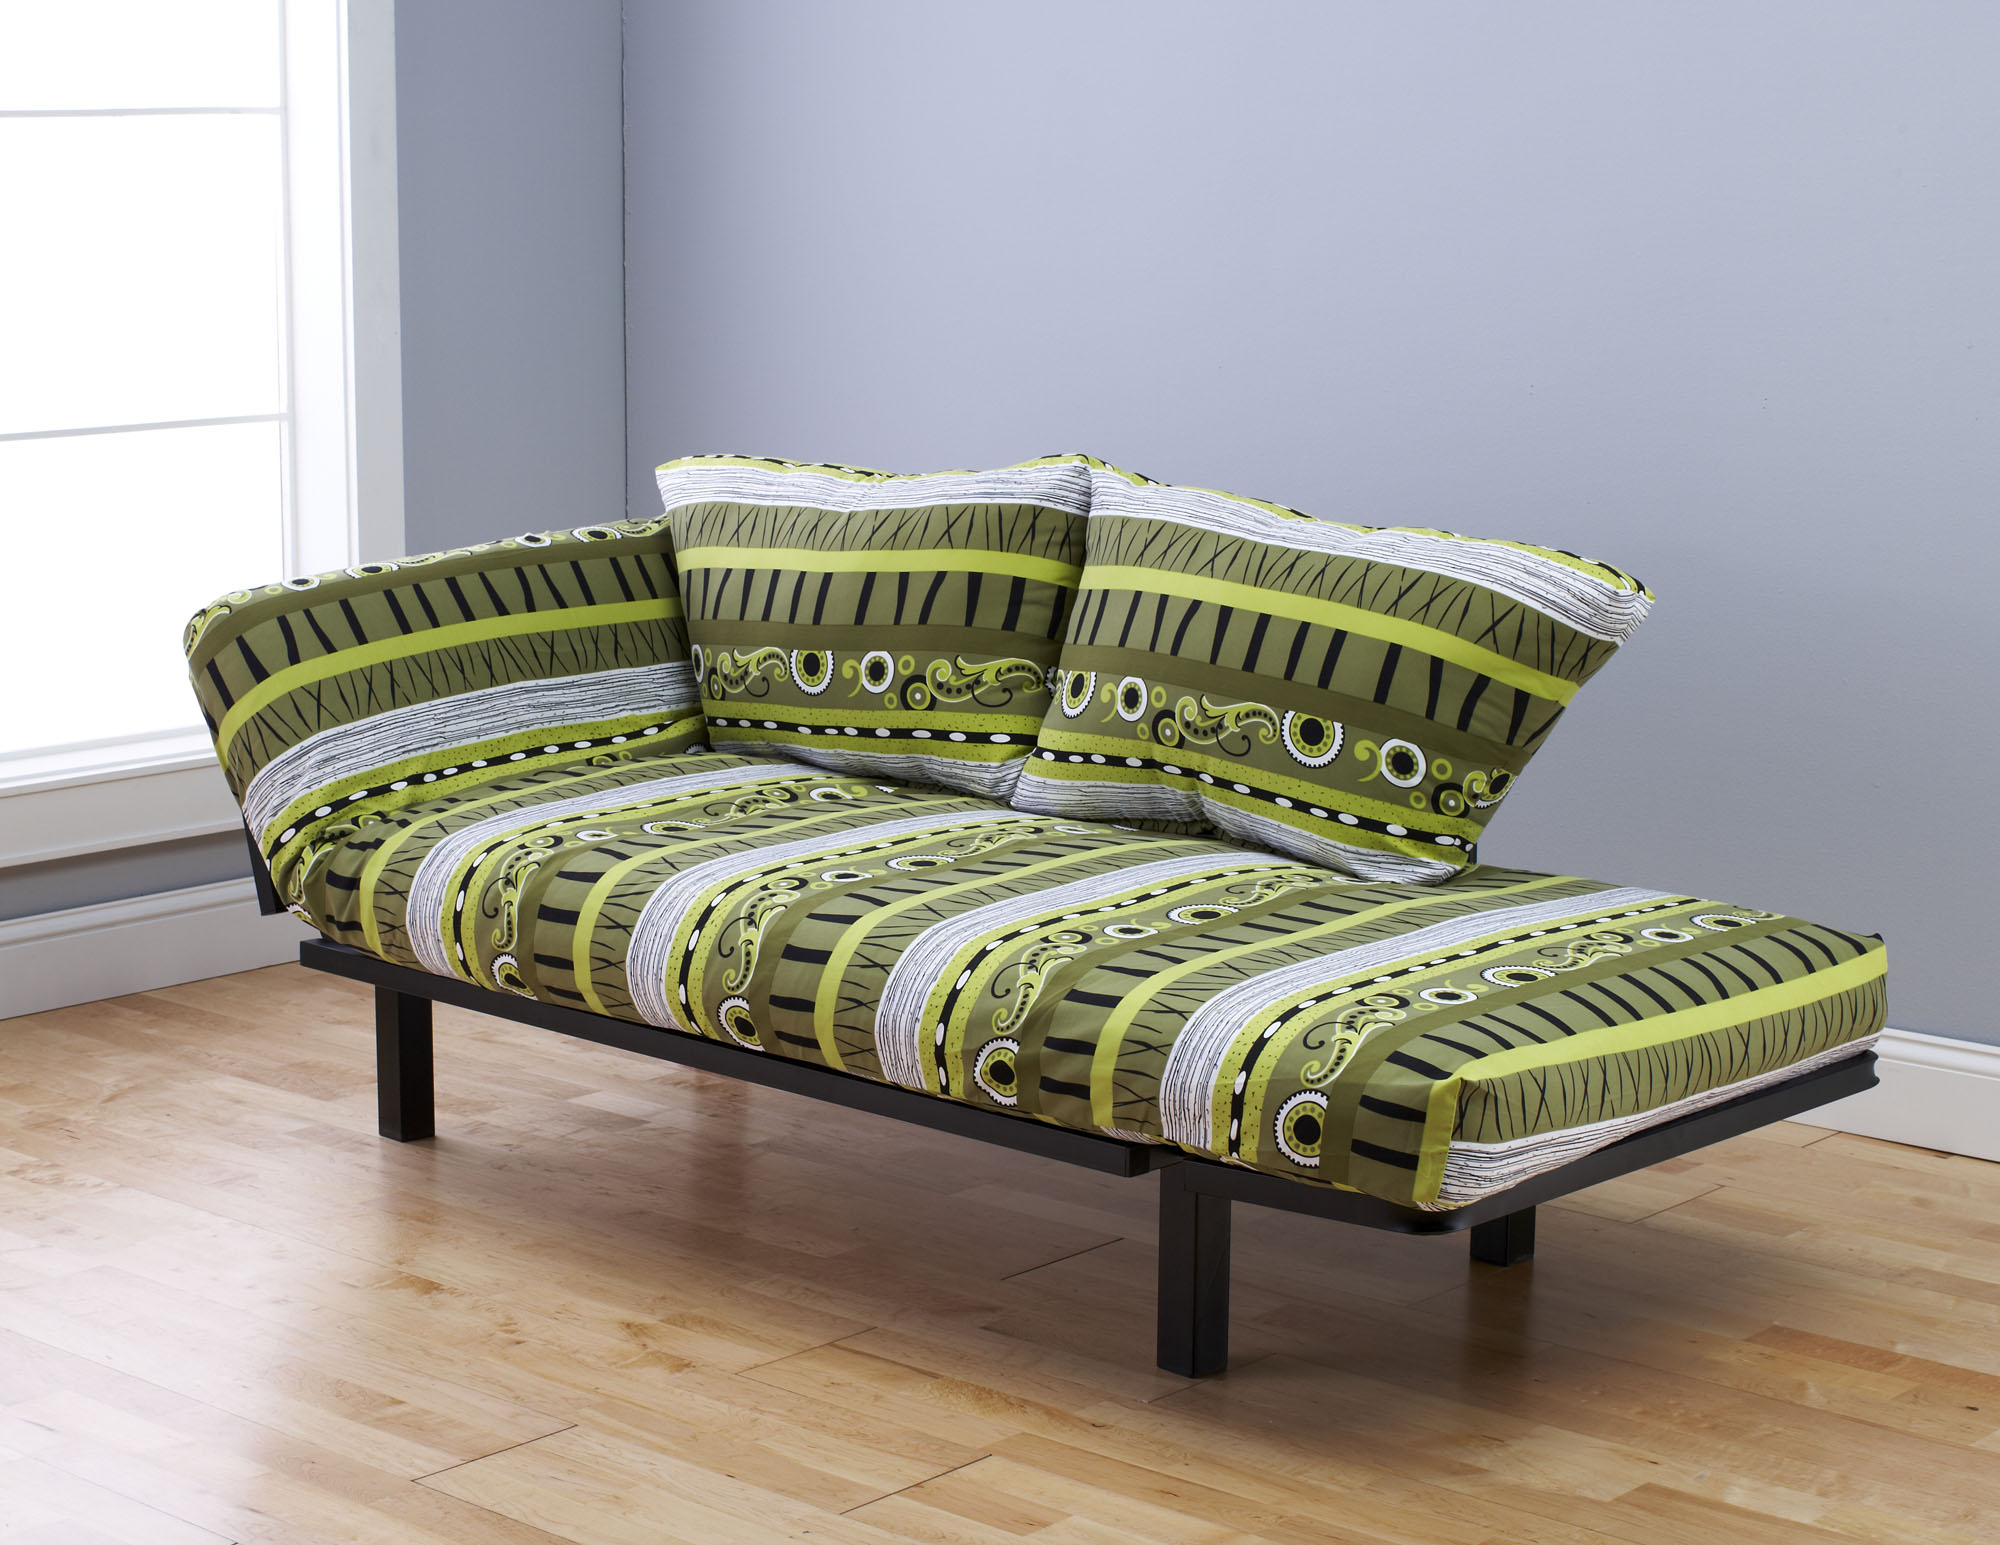 Spacely Futon Daybed Lounger with Mattress Radiant Flux by Kodiak